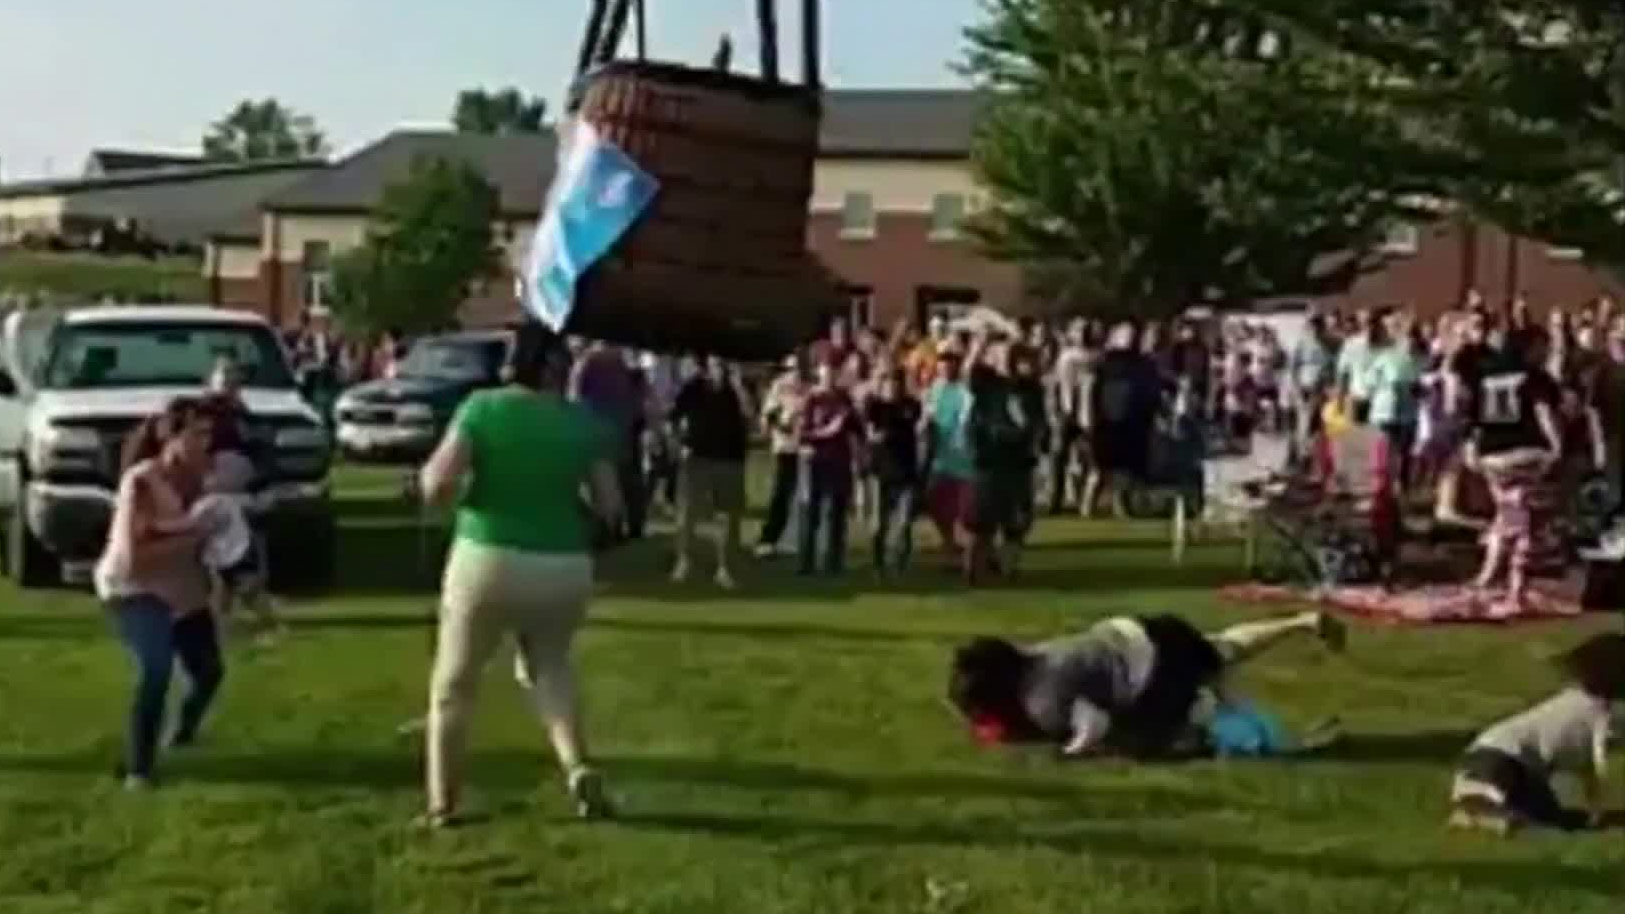 Moment hot air balloon crashes into crowd